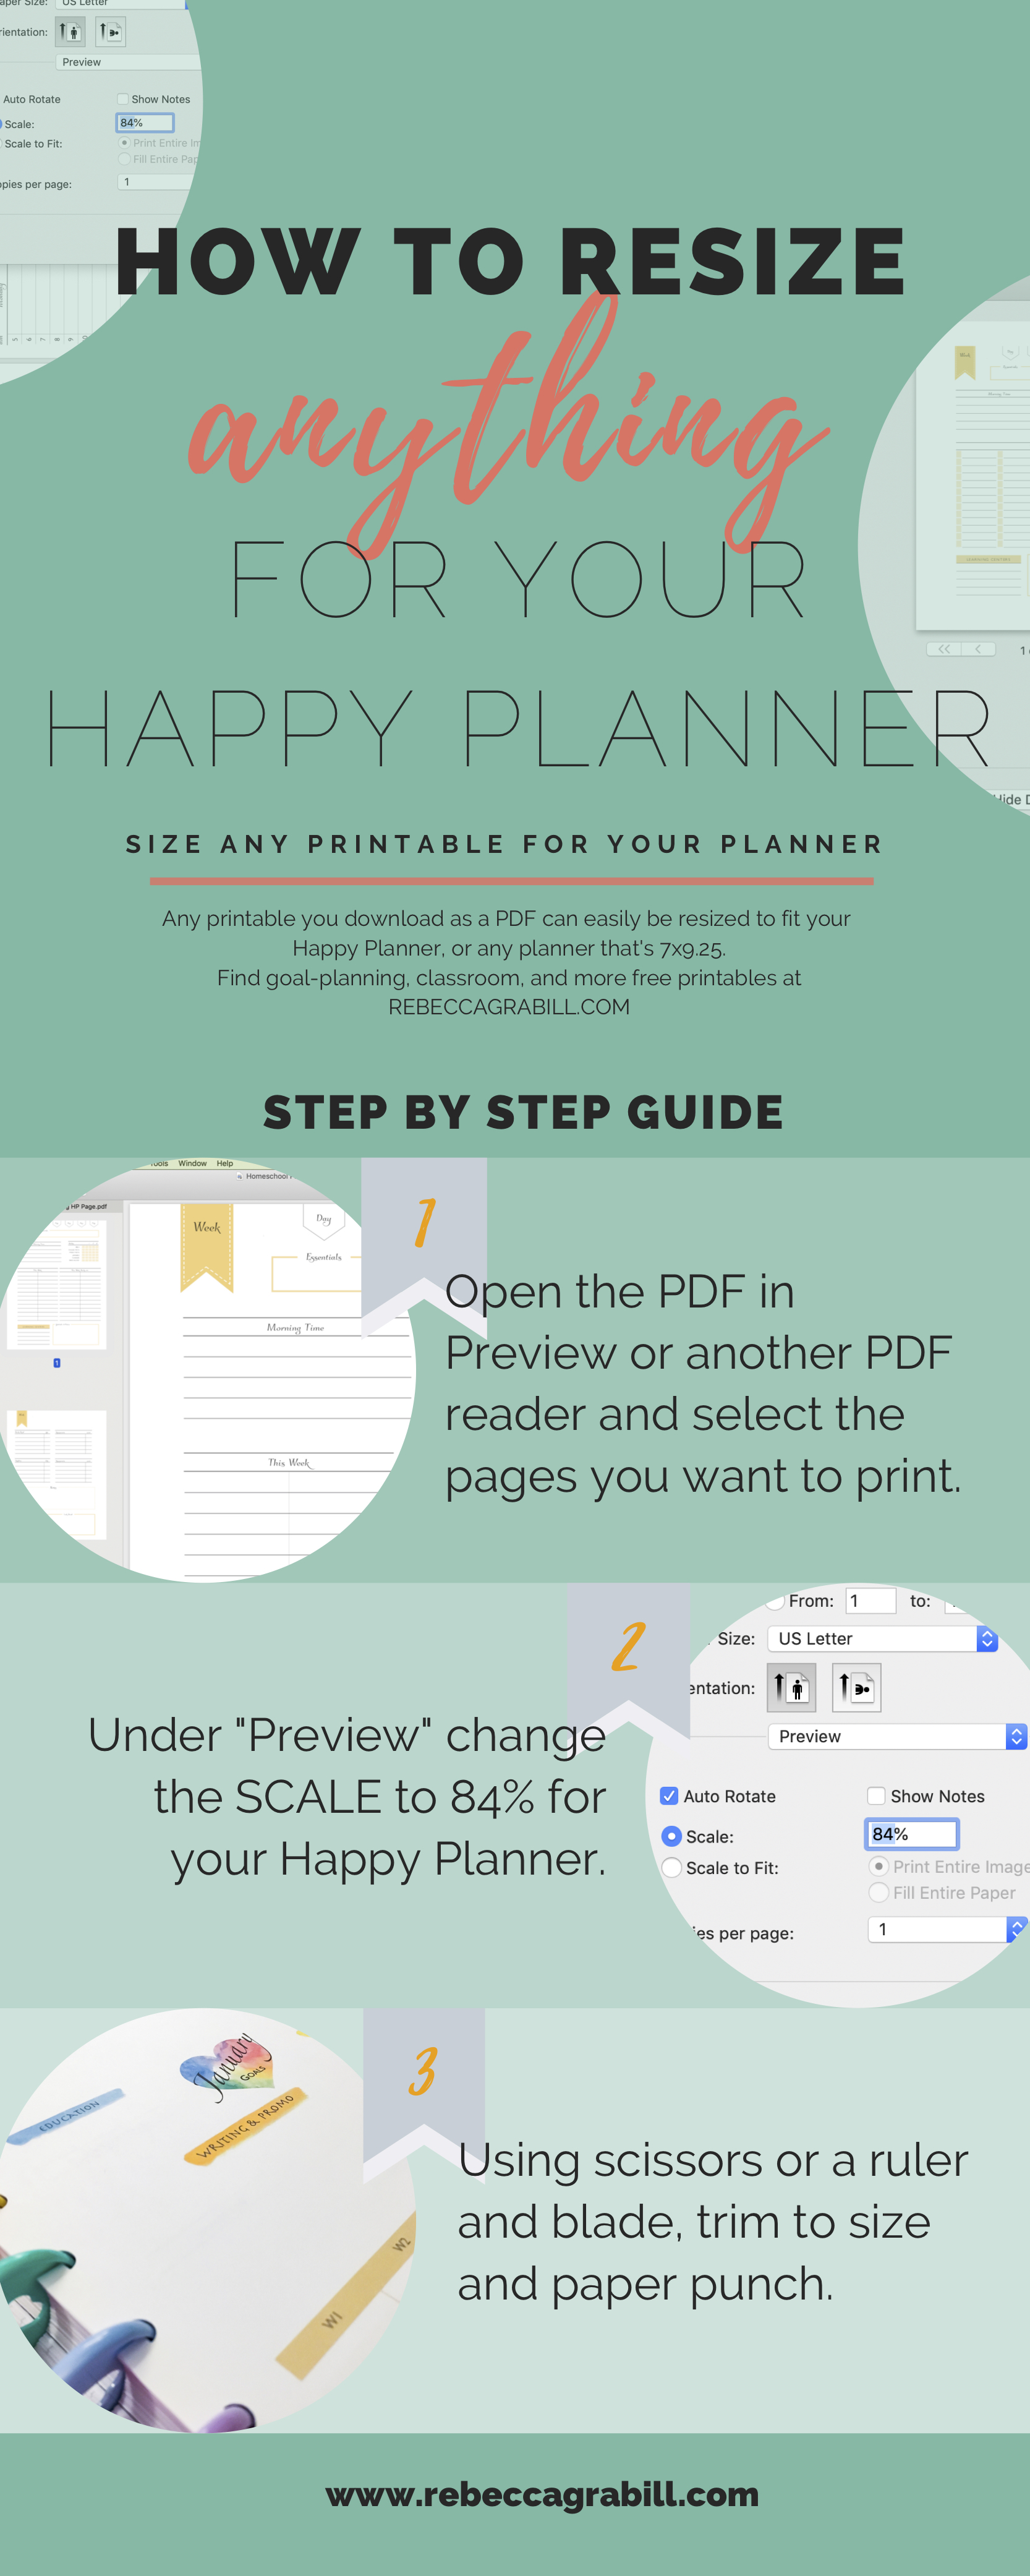 A step-by-step guide for resizing any PDF to print exactly the right size for your Happy Planner or most other mid-sized planners.